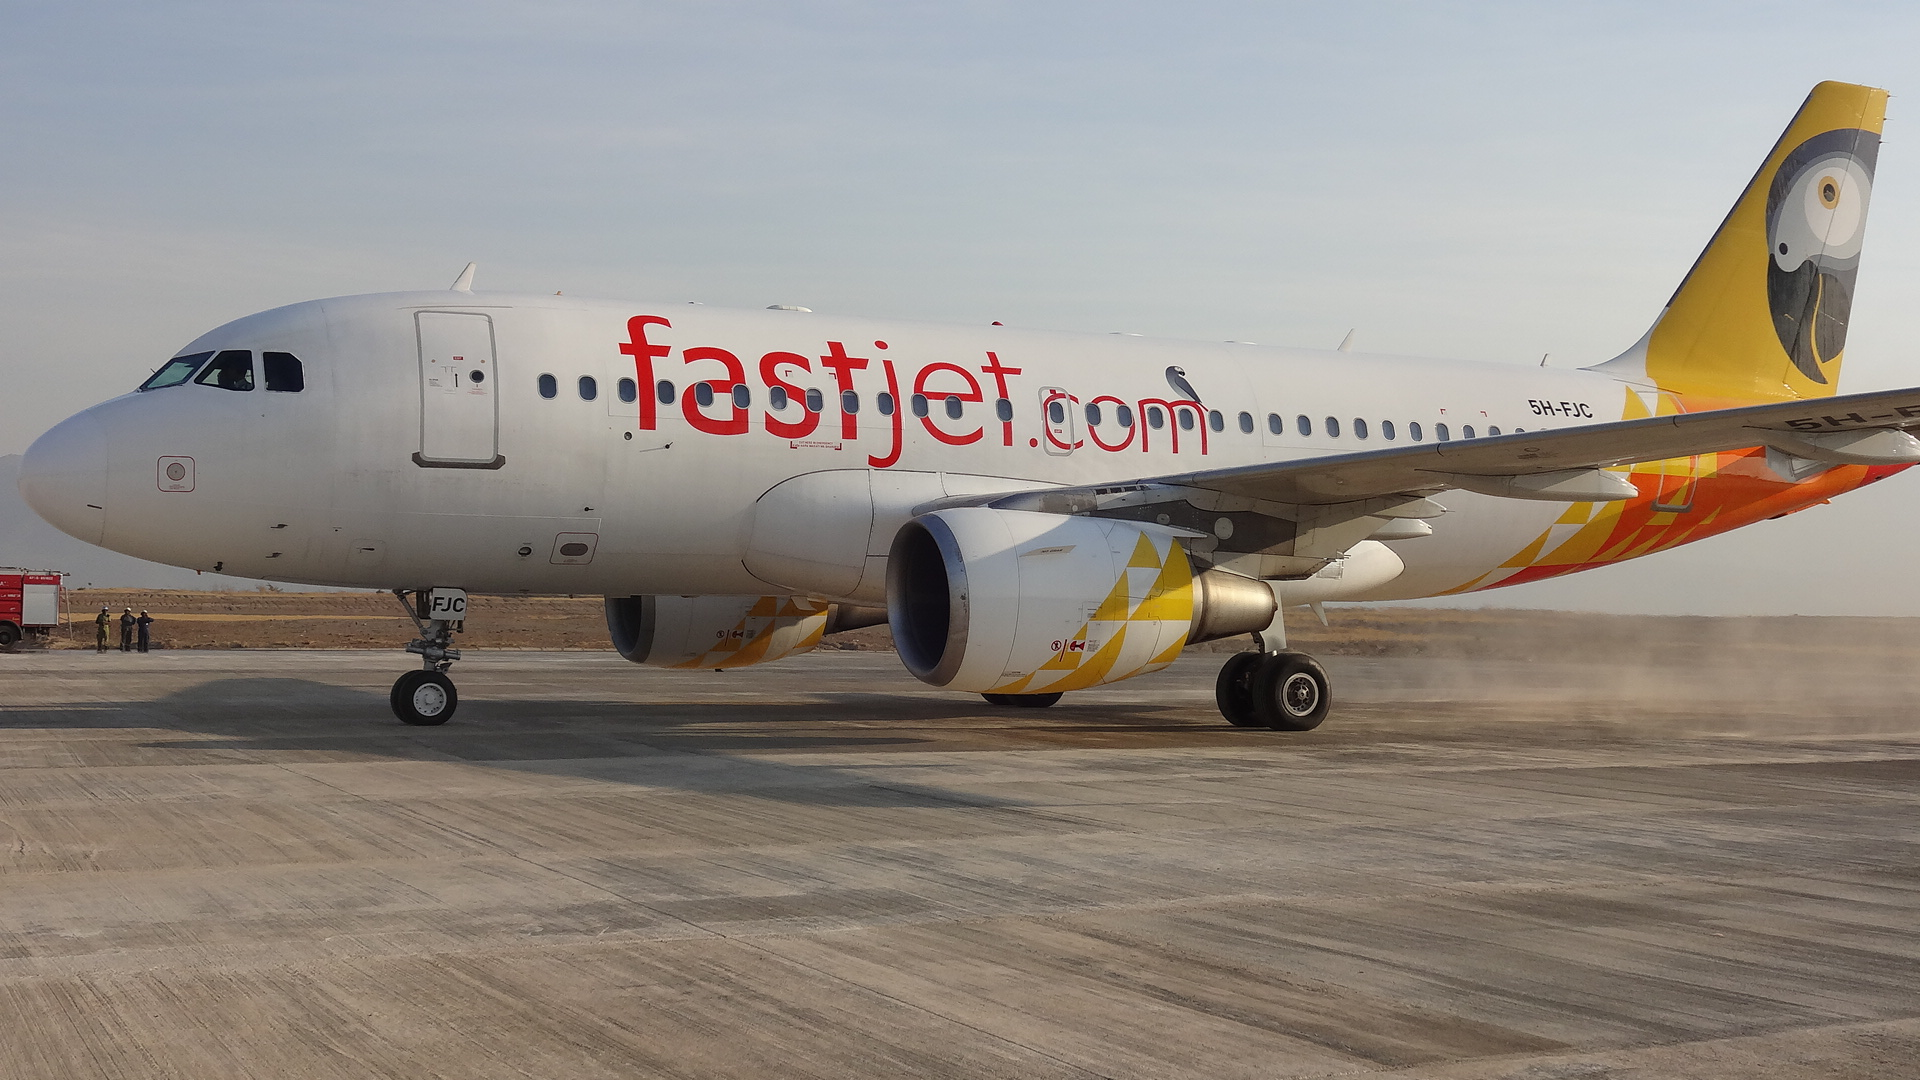 Surprise move by Fastjet may shake up SA airline scene